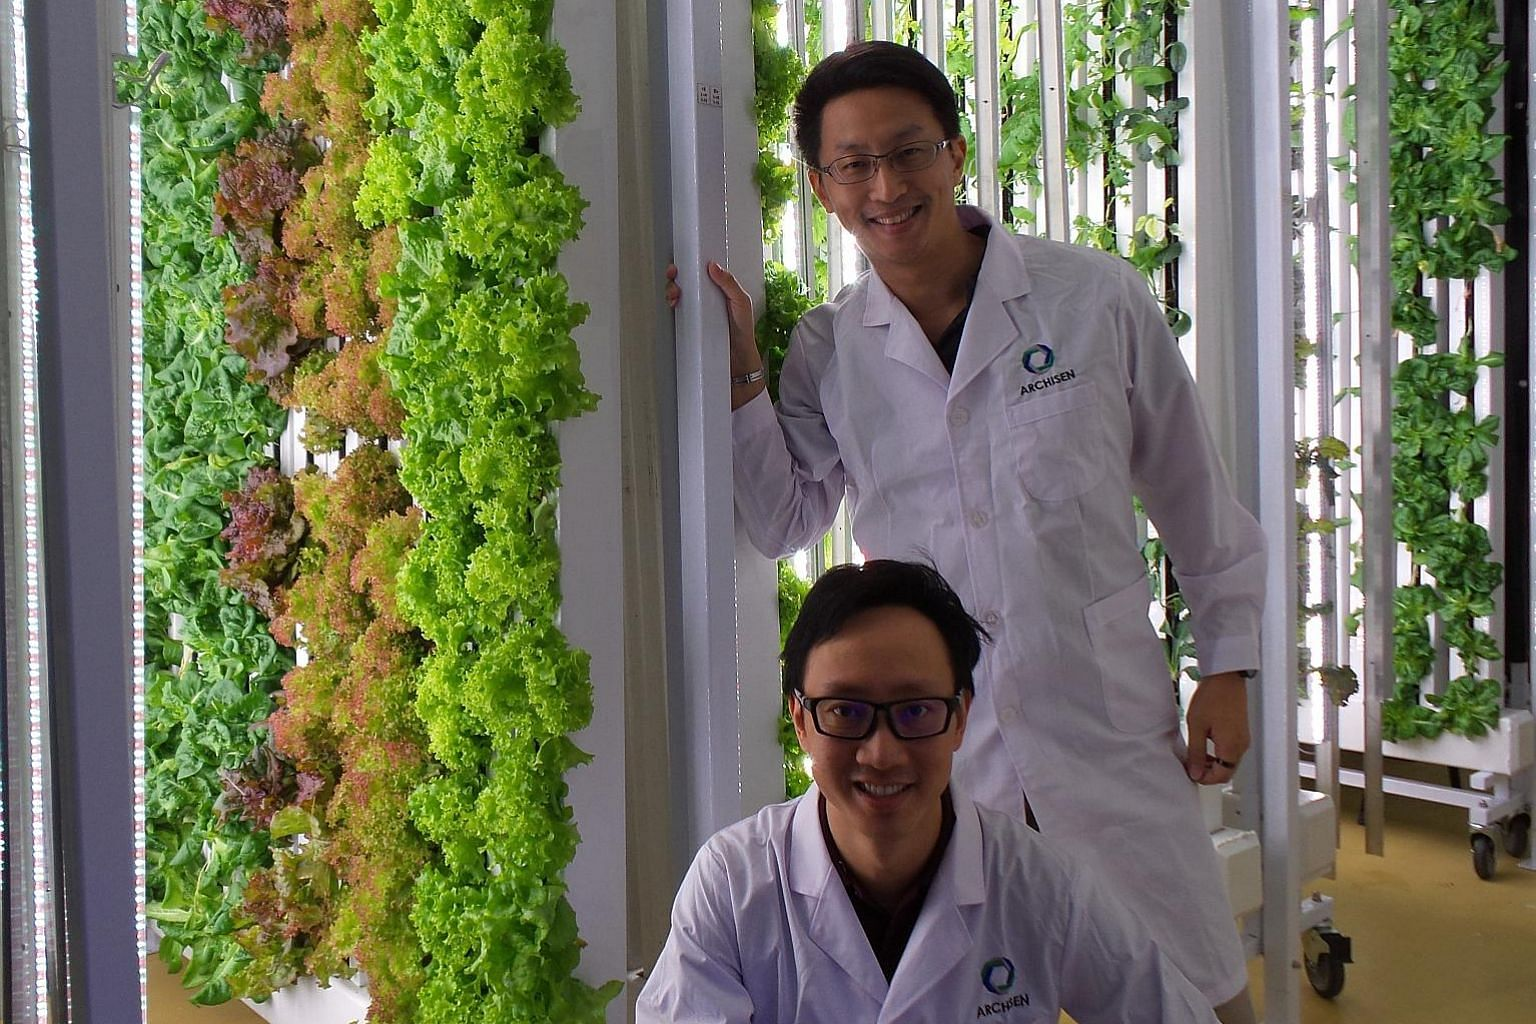 Start-up agritech company Archisen's co-founders Sven Yeo (standing) and Vincent Wei. Archisen designs, develops and operates systems and solutions to enhance the local production of fresh vegetables in urban cities.